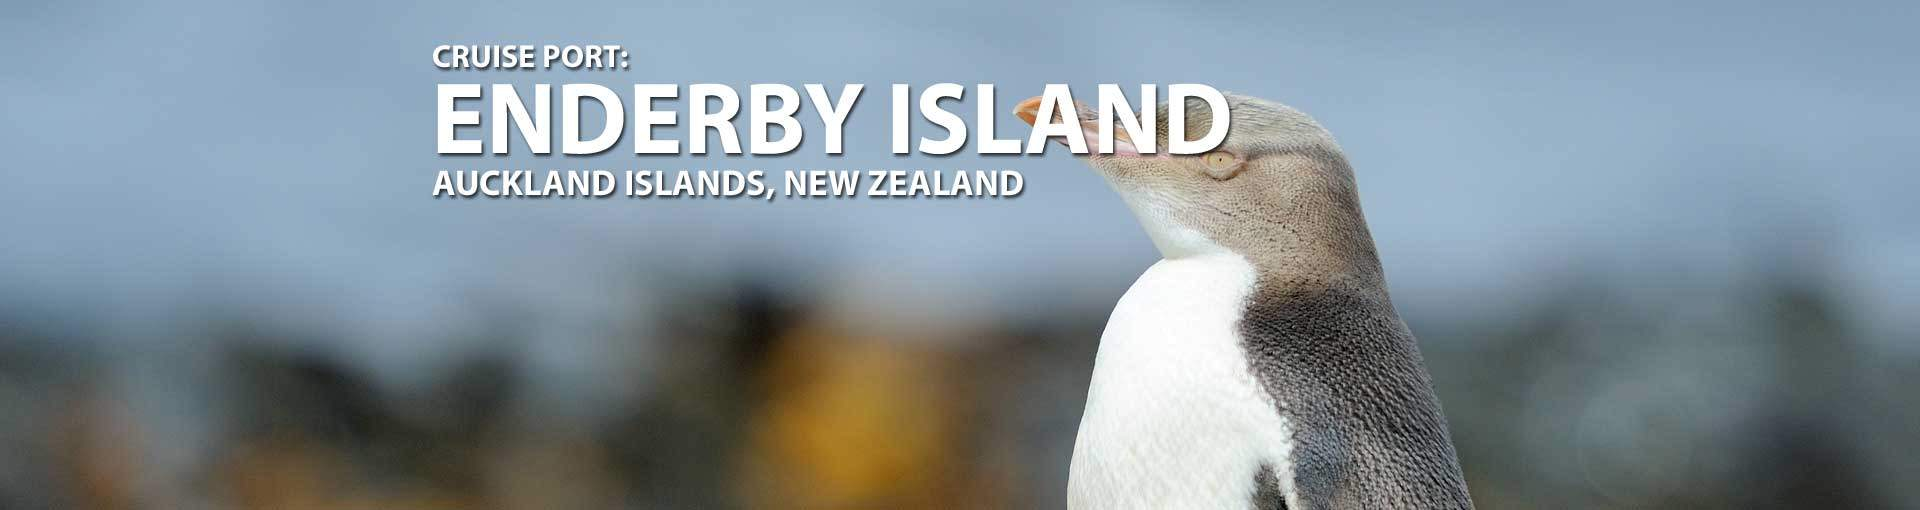 Cruises to Enderby Island, Auckland Islands